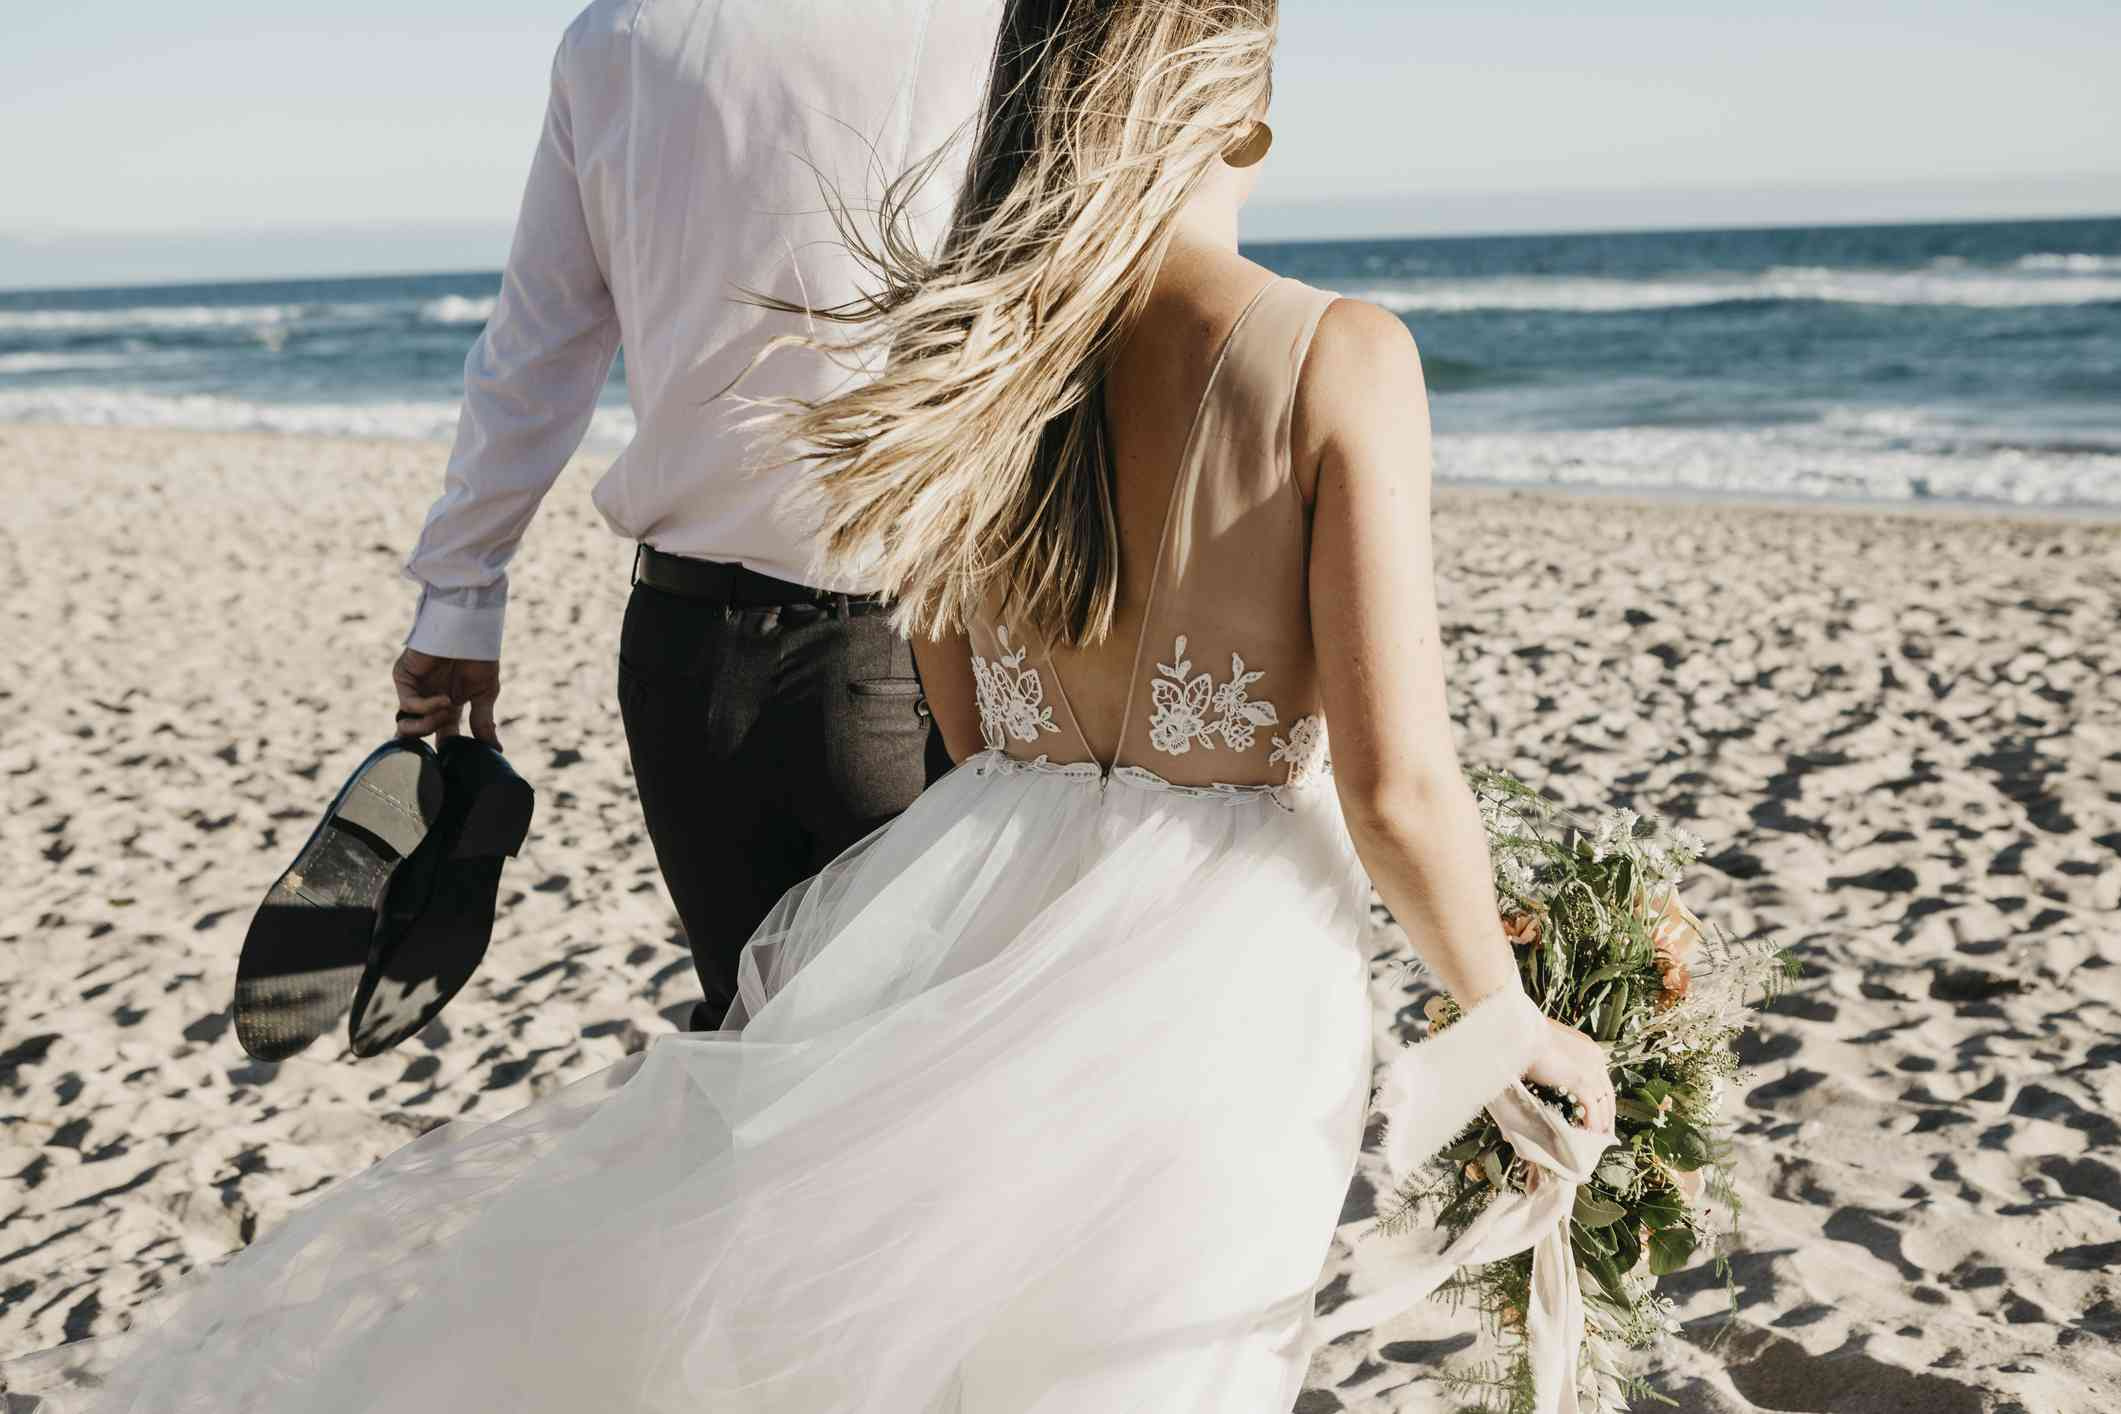 6 Reasons To Remarry After Divorce